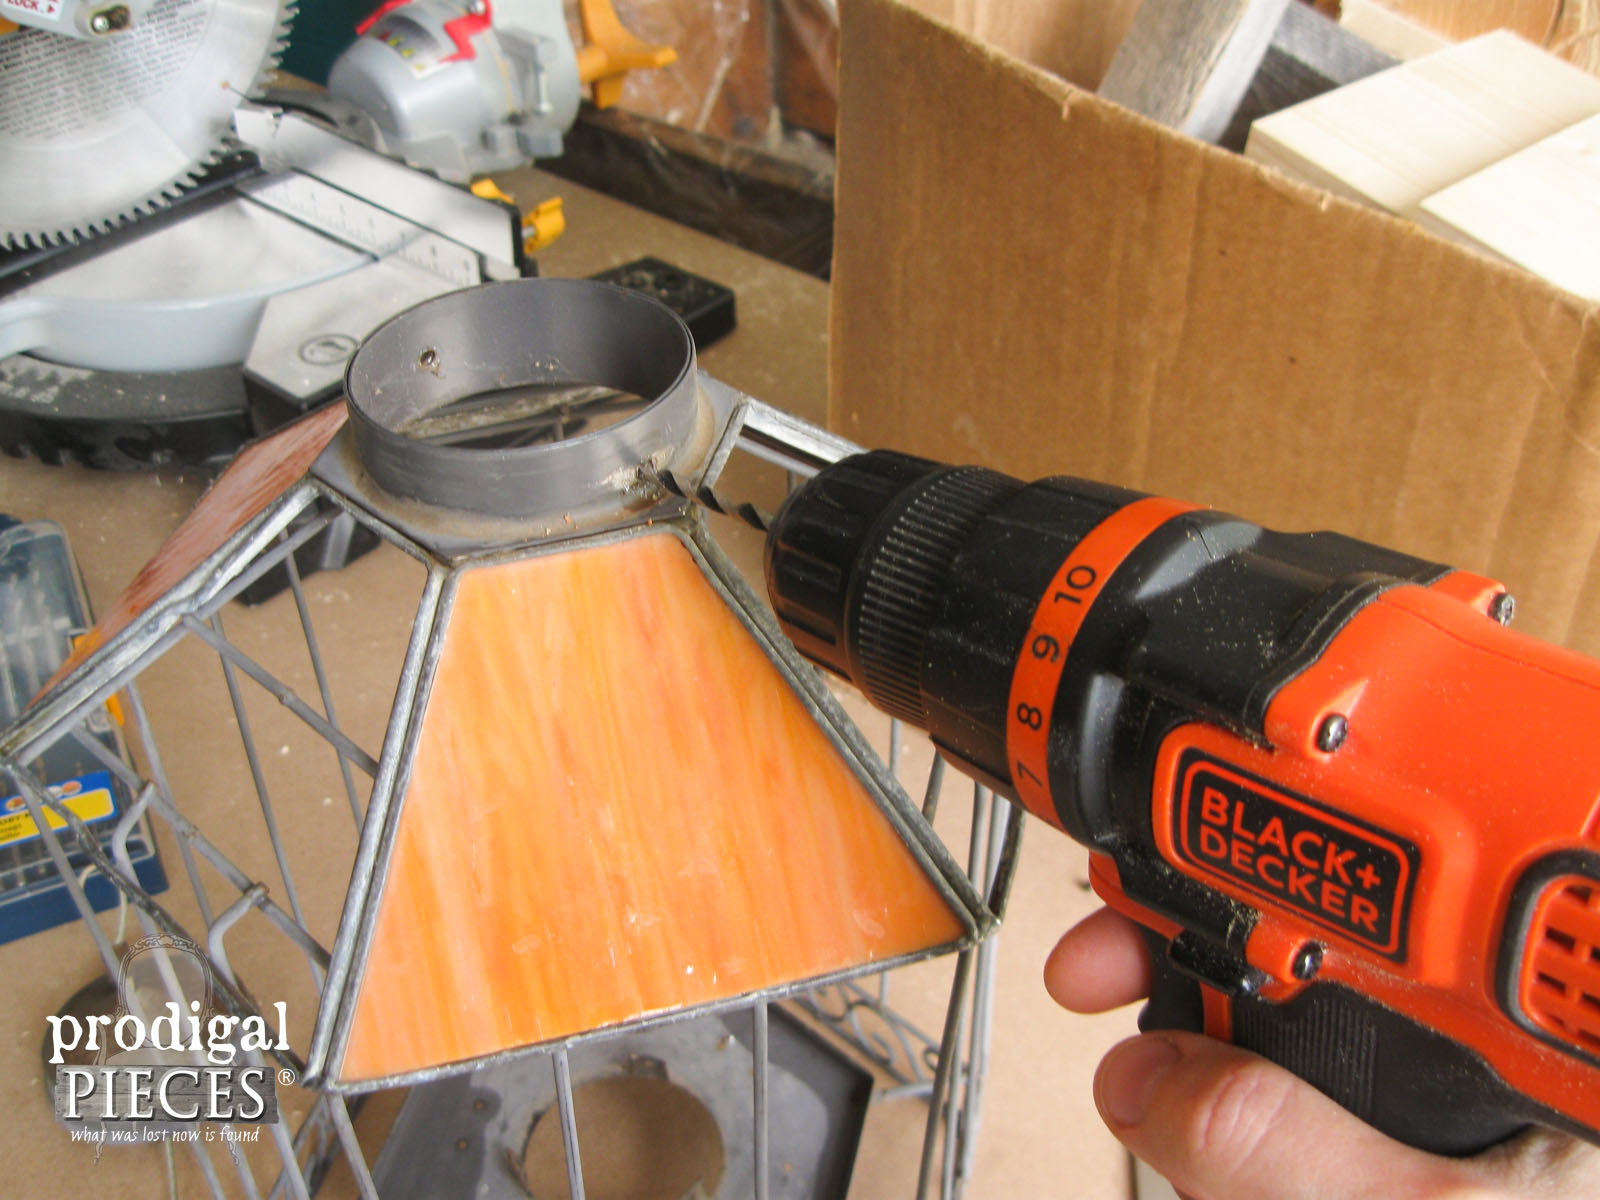 Using Cordless Drill to Repair Broken Bird Feeder | Prodigal Pieces | www.prodigalpieces.com